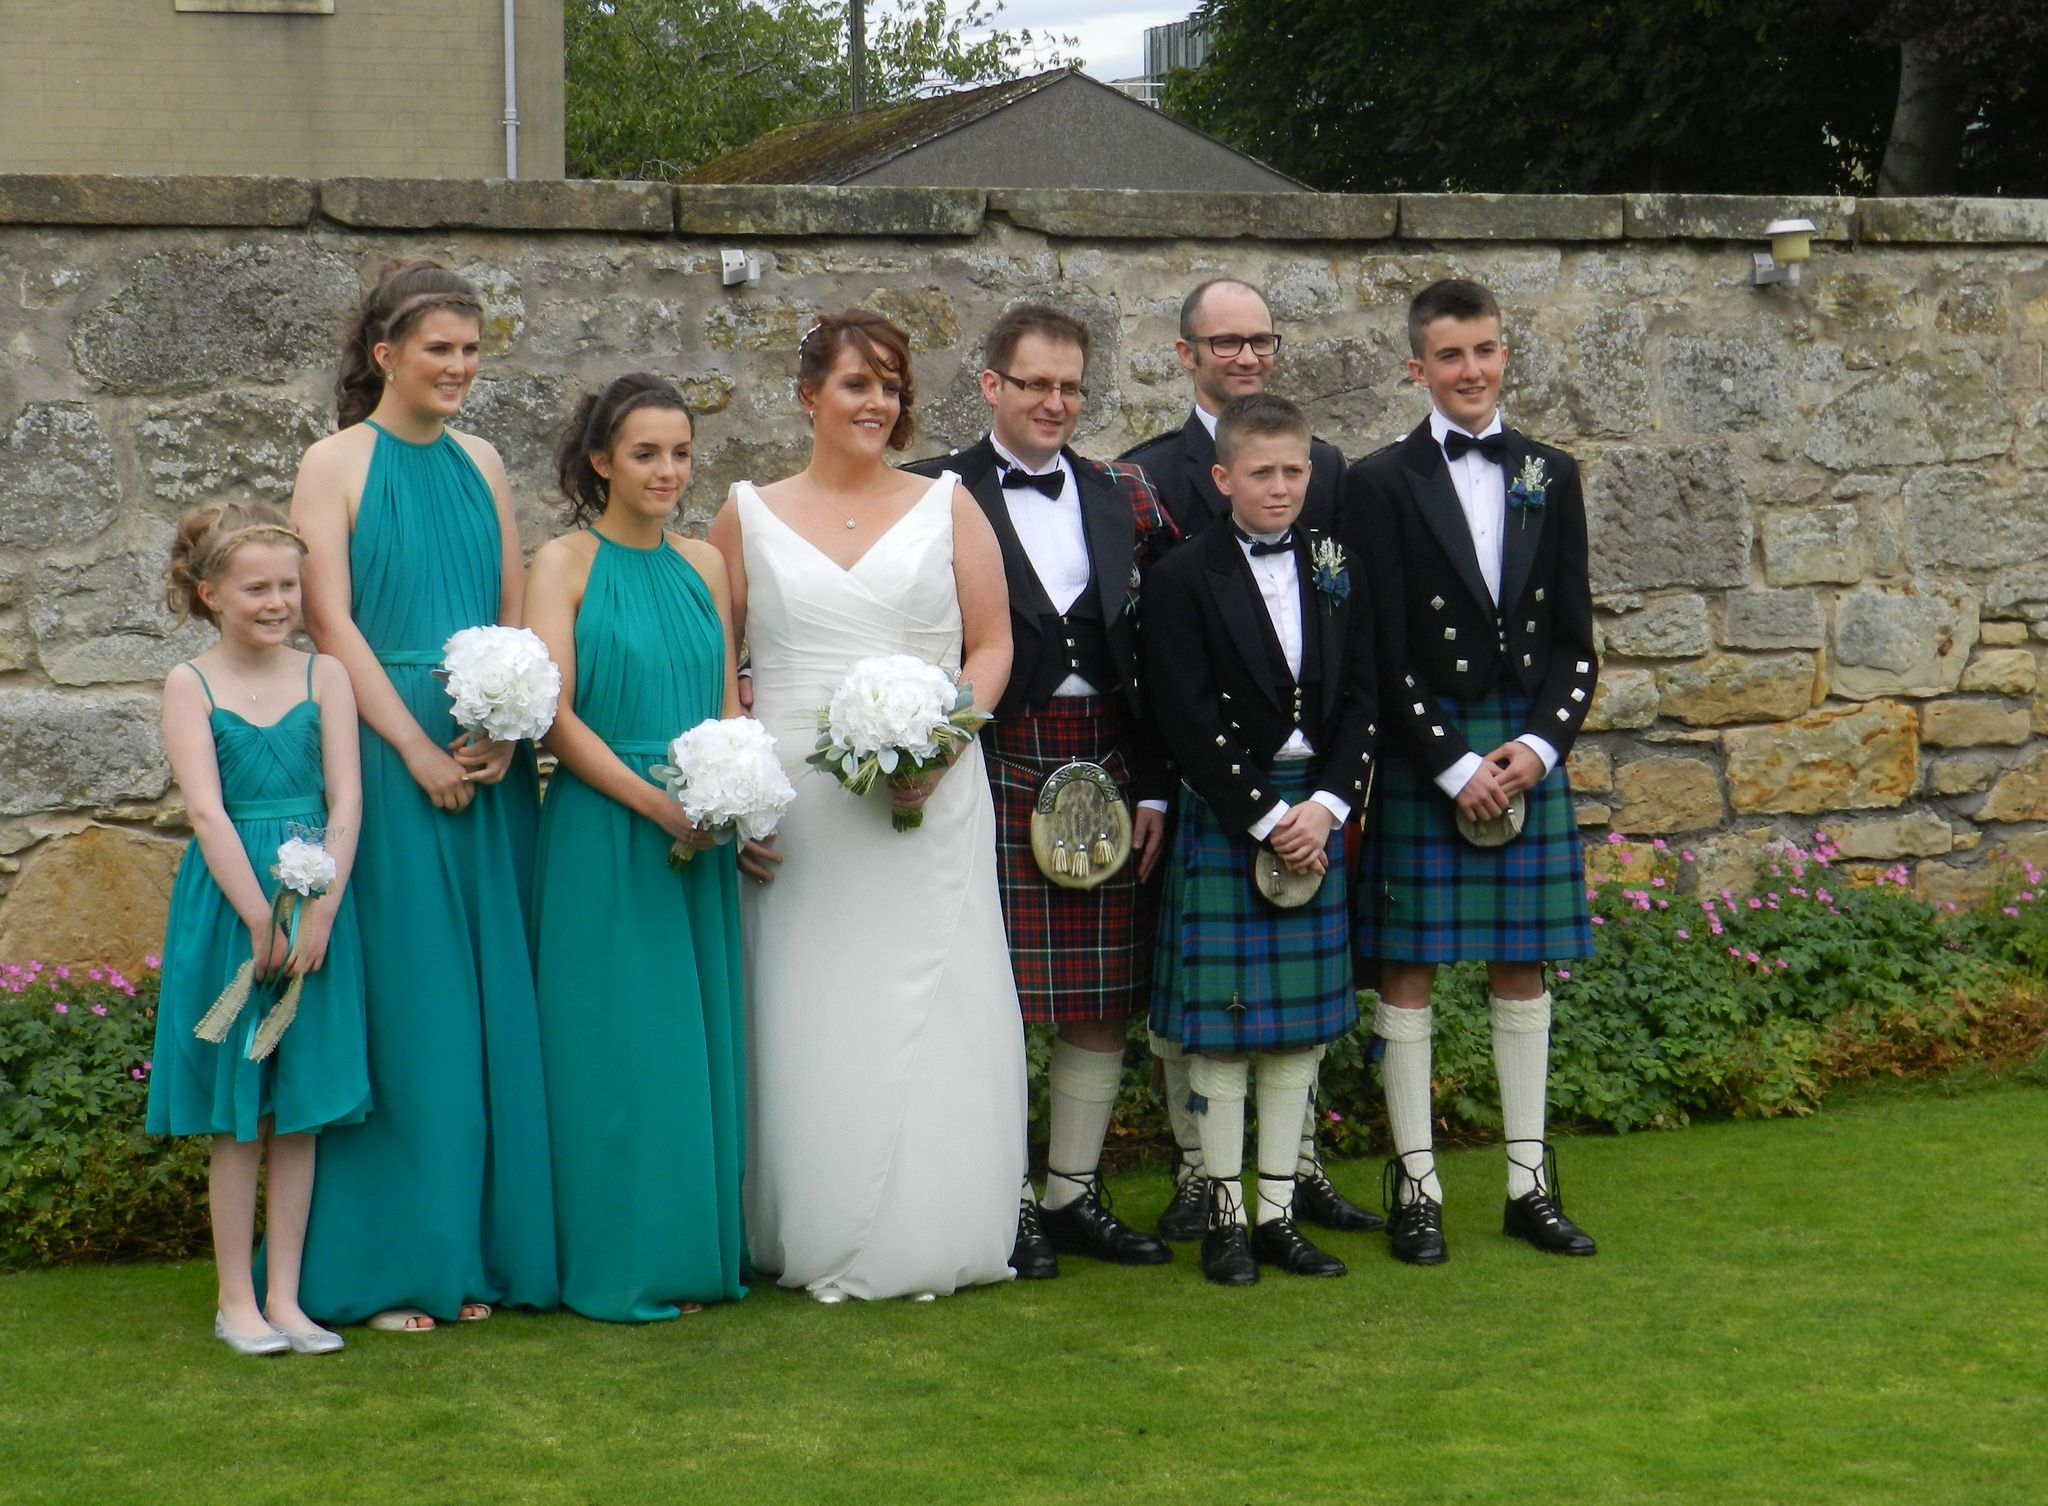 https://flic.kr/p/LC6qkW | The Wedding, Bride and Groom, Best man, Bridesmaids and Ushers, Sep 2016 | It was lovely to attend a wedding yesterday always such a happy occasion. I have known the groom for over 20 years. We had a nice wedding ceremony at Elgin Baptist Church and then we walked to the Sunninghill Hotel where we had a lovely meal.